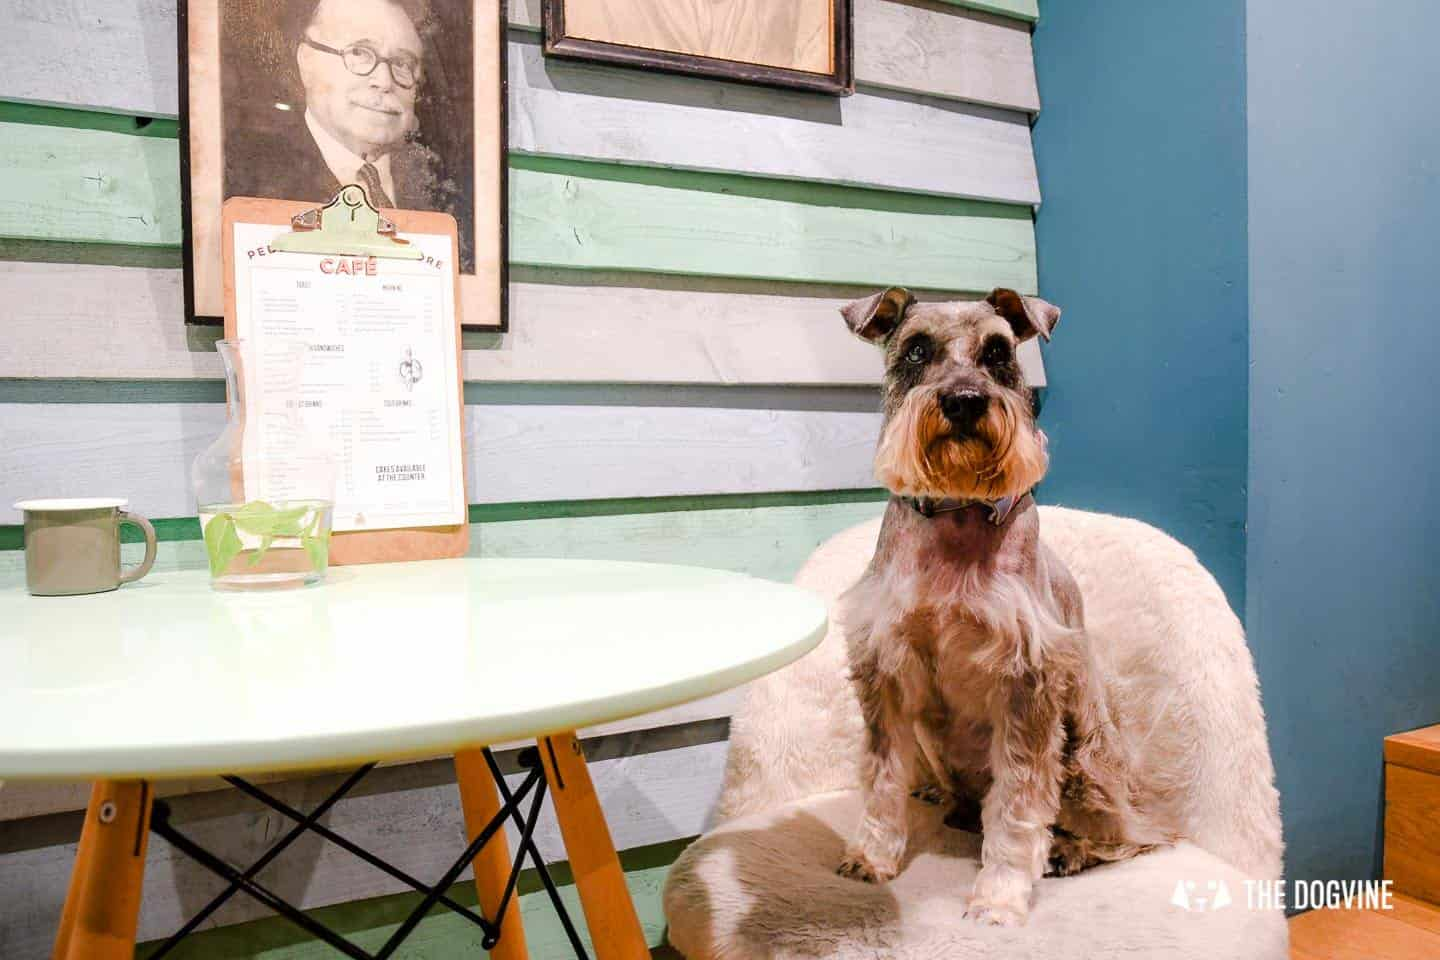 My Dog Friendly London By Pepper Chung the Schnauzer - Dog Friendly Notting Hill 3